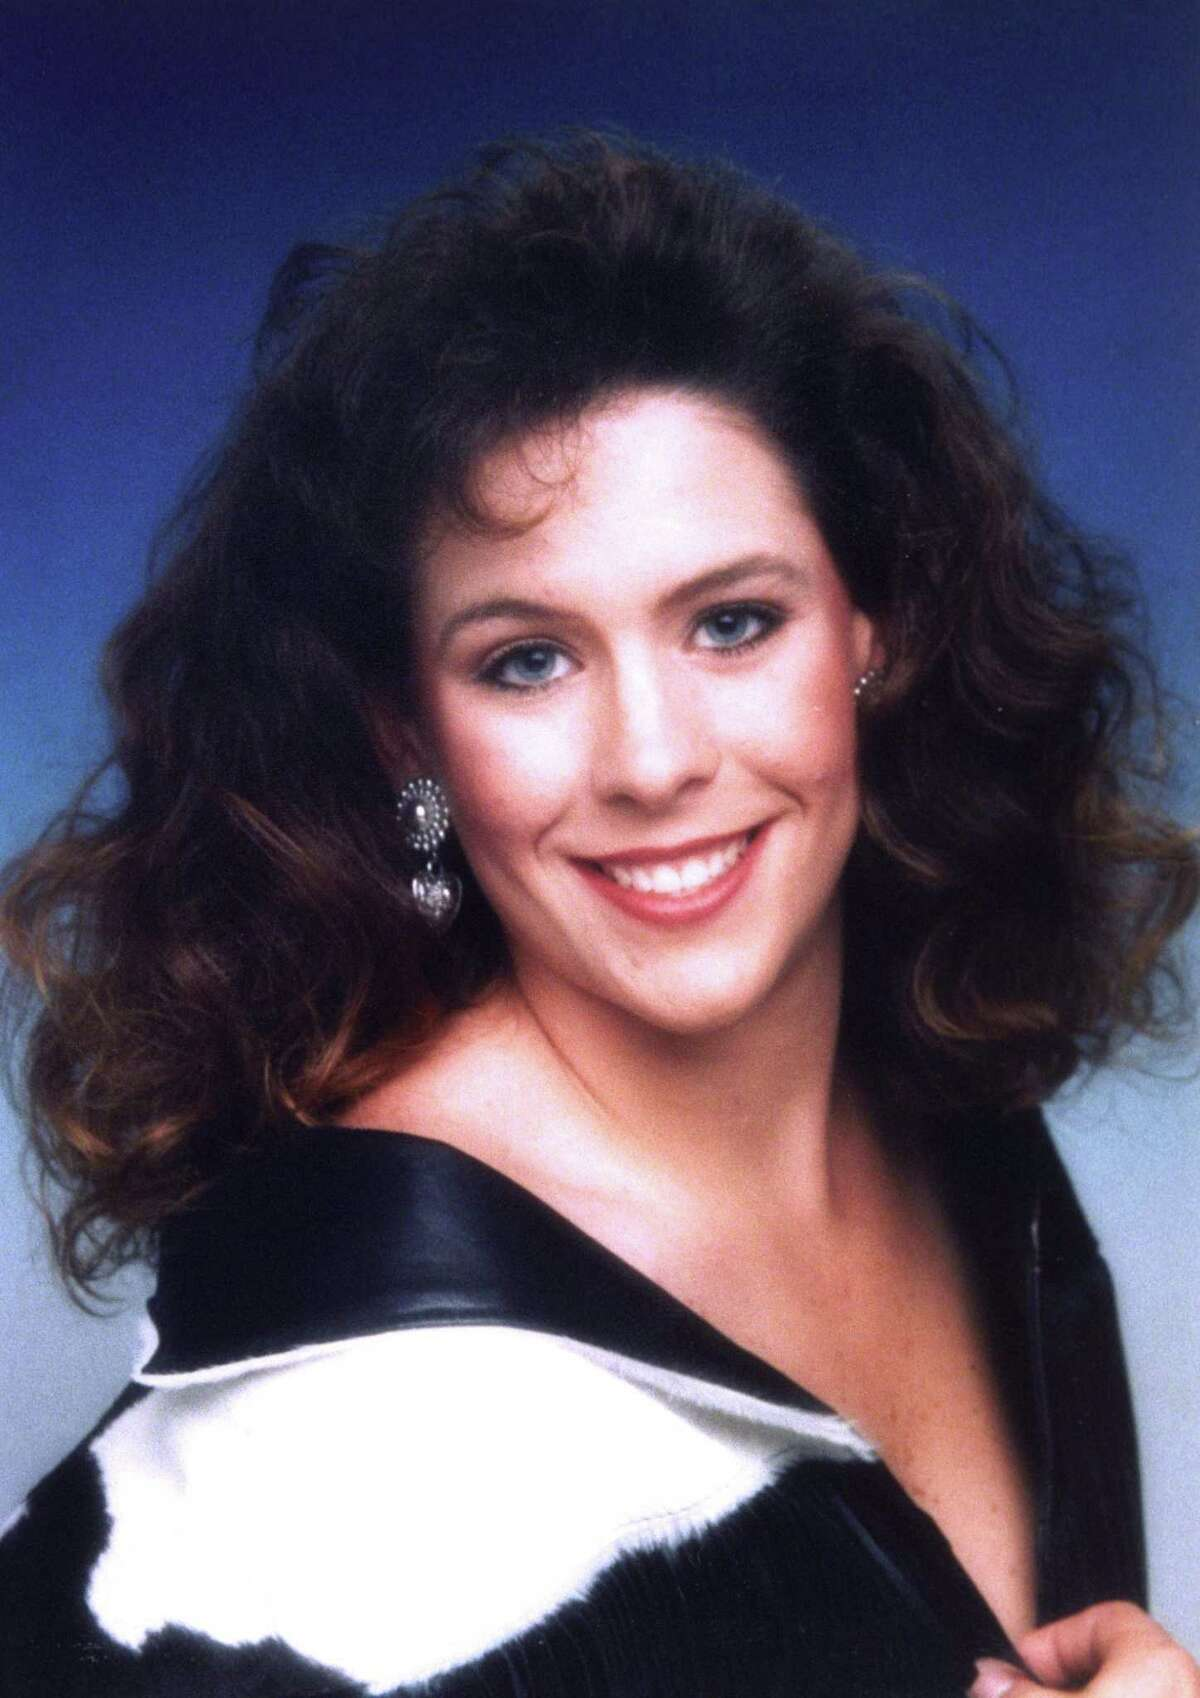 Stacey Stites is shown in a 1995 graduation photo from Smithville High School.